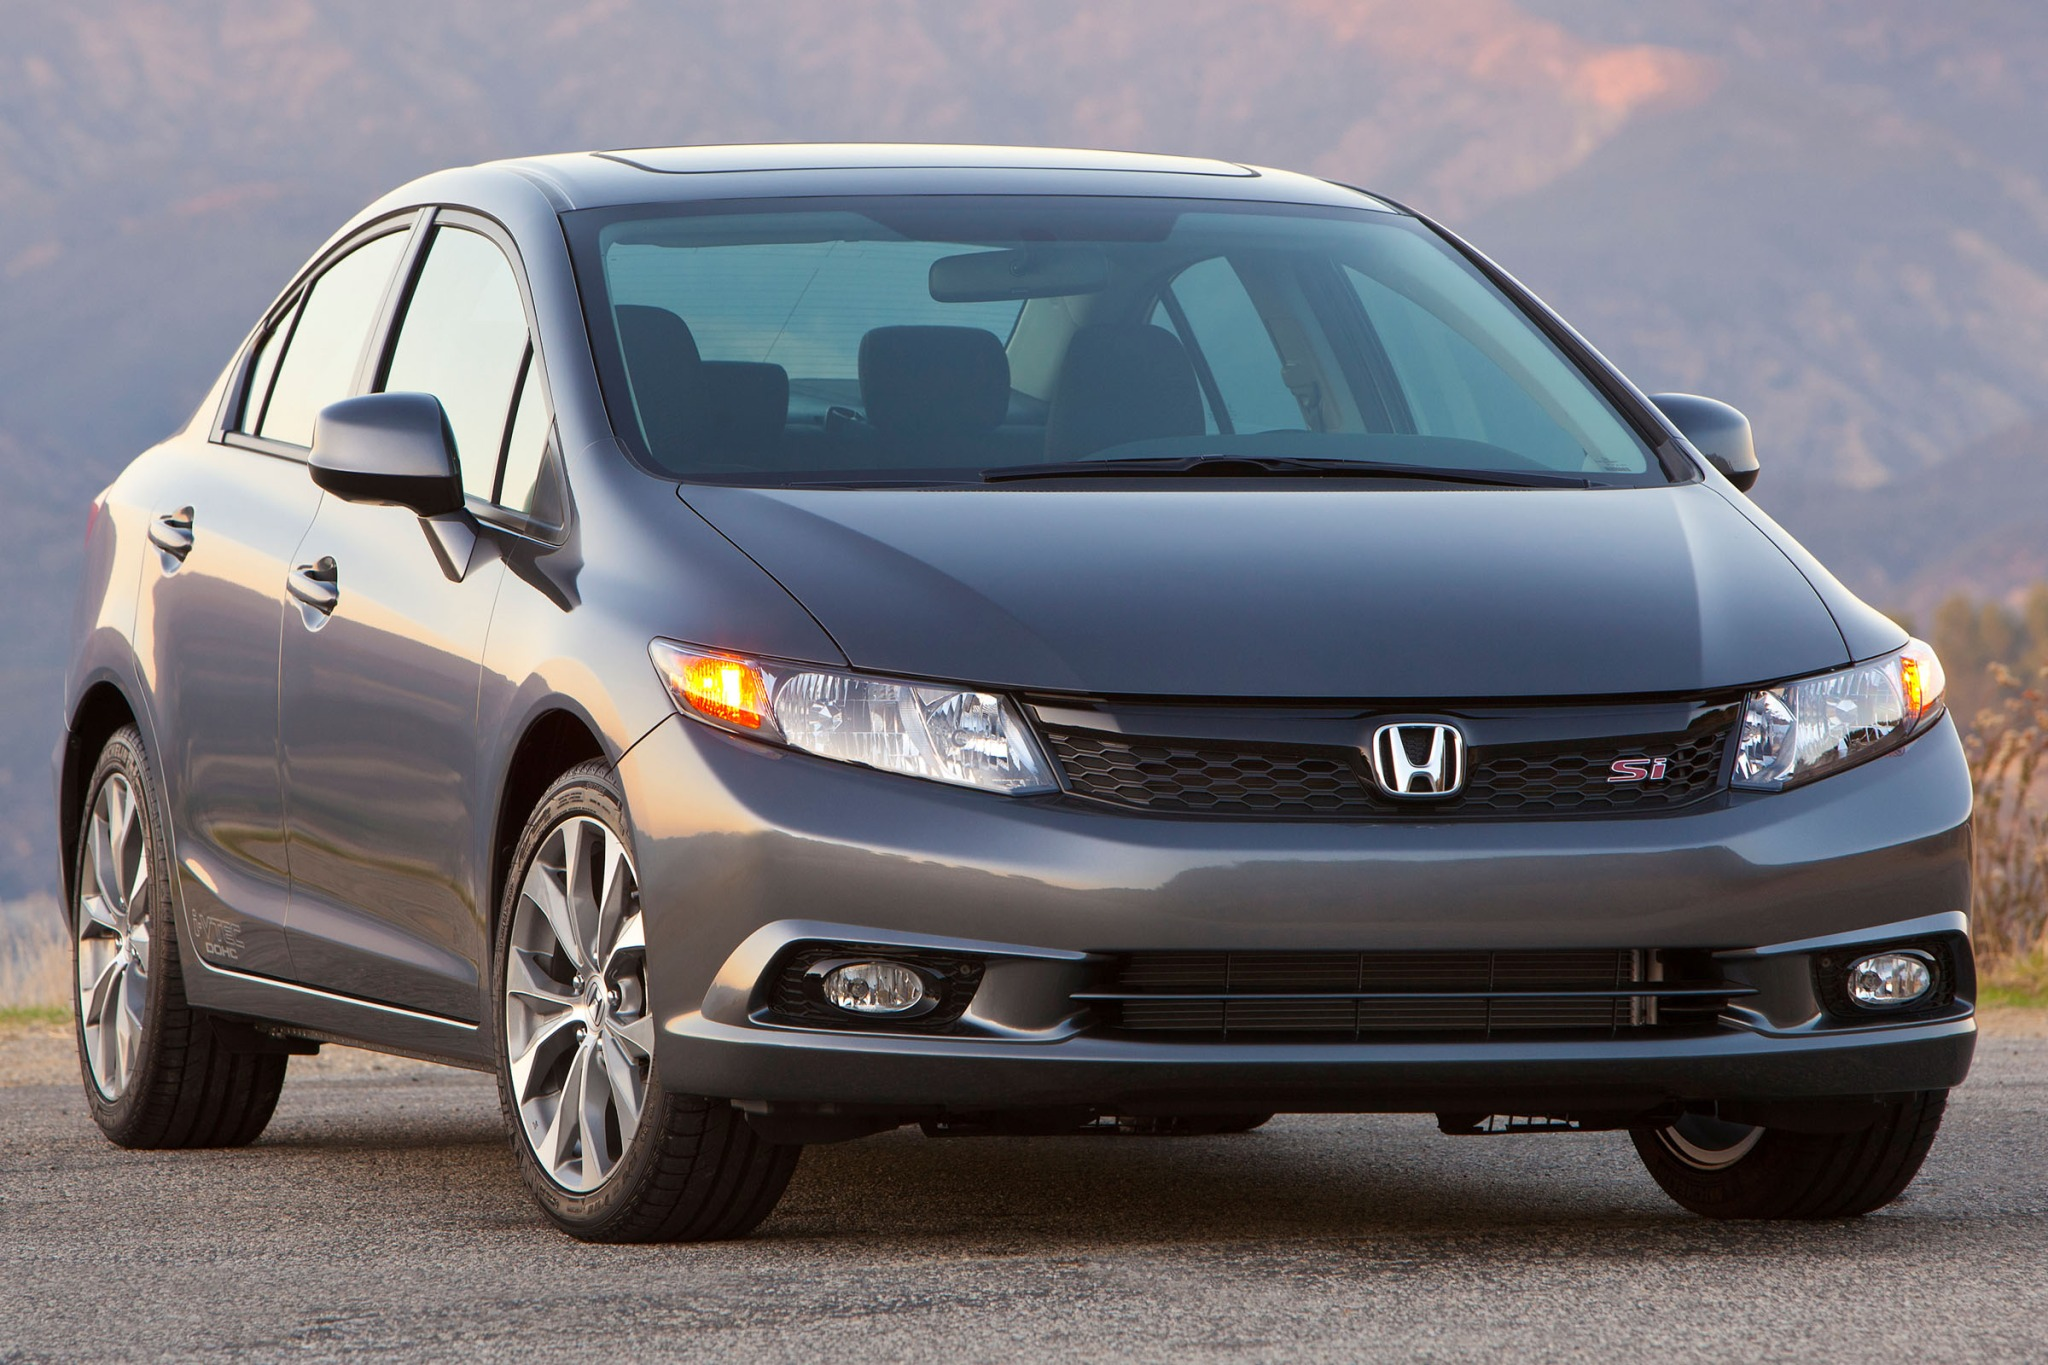 2012 Honda Civic Si Coupe exterior #9